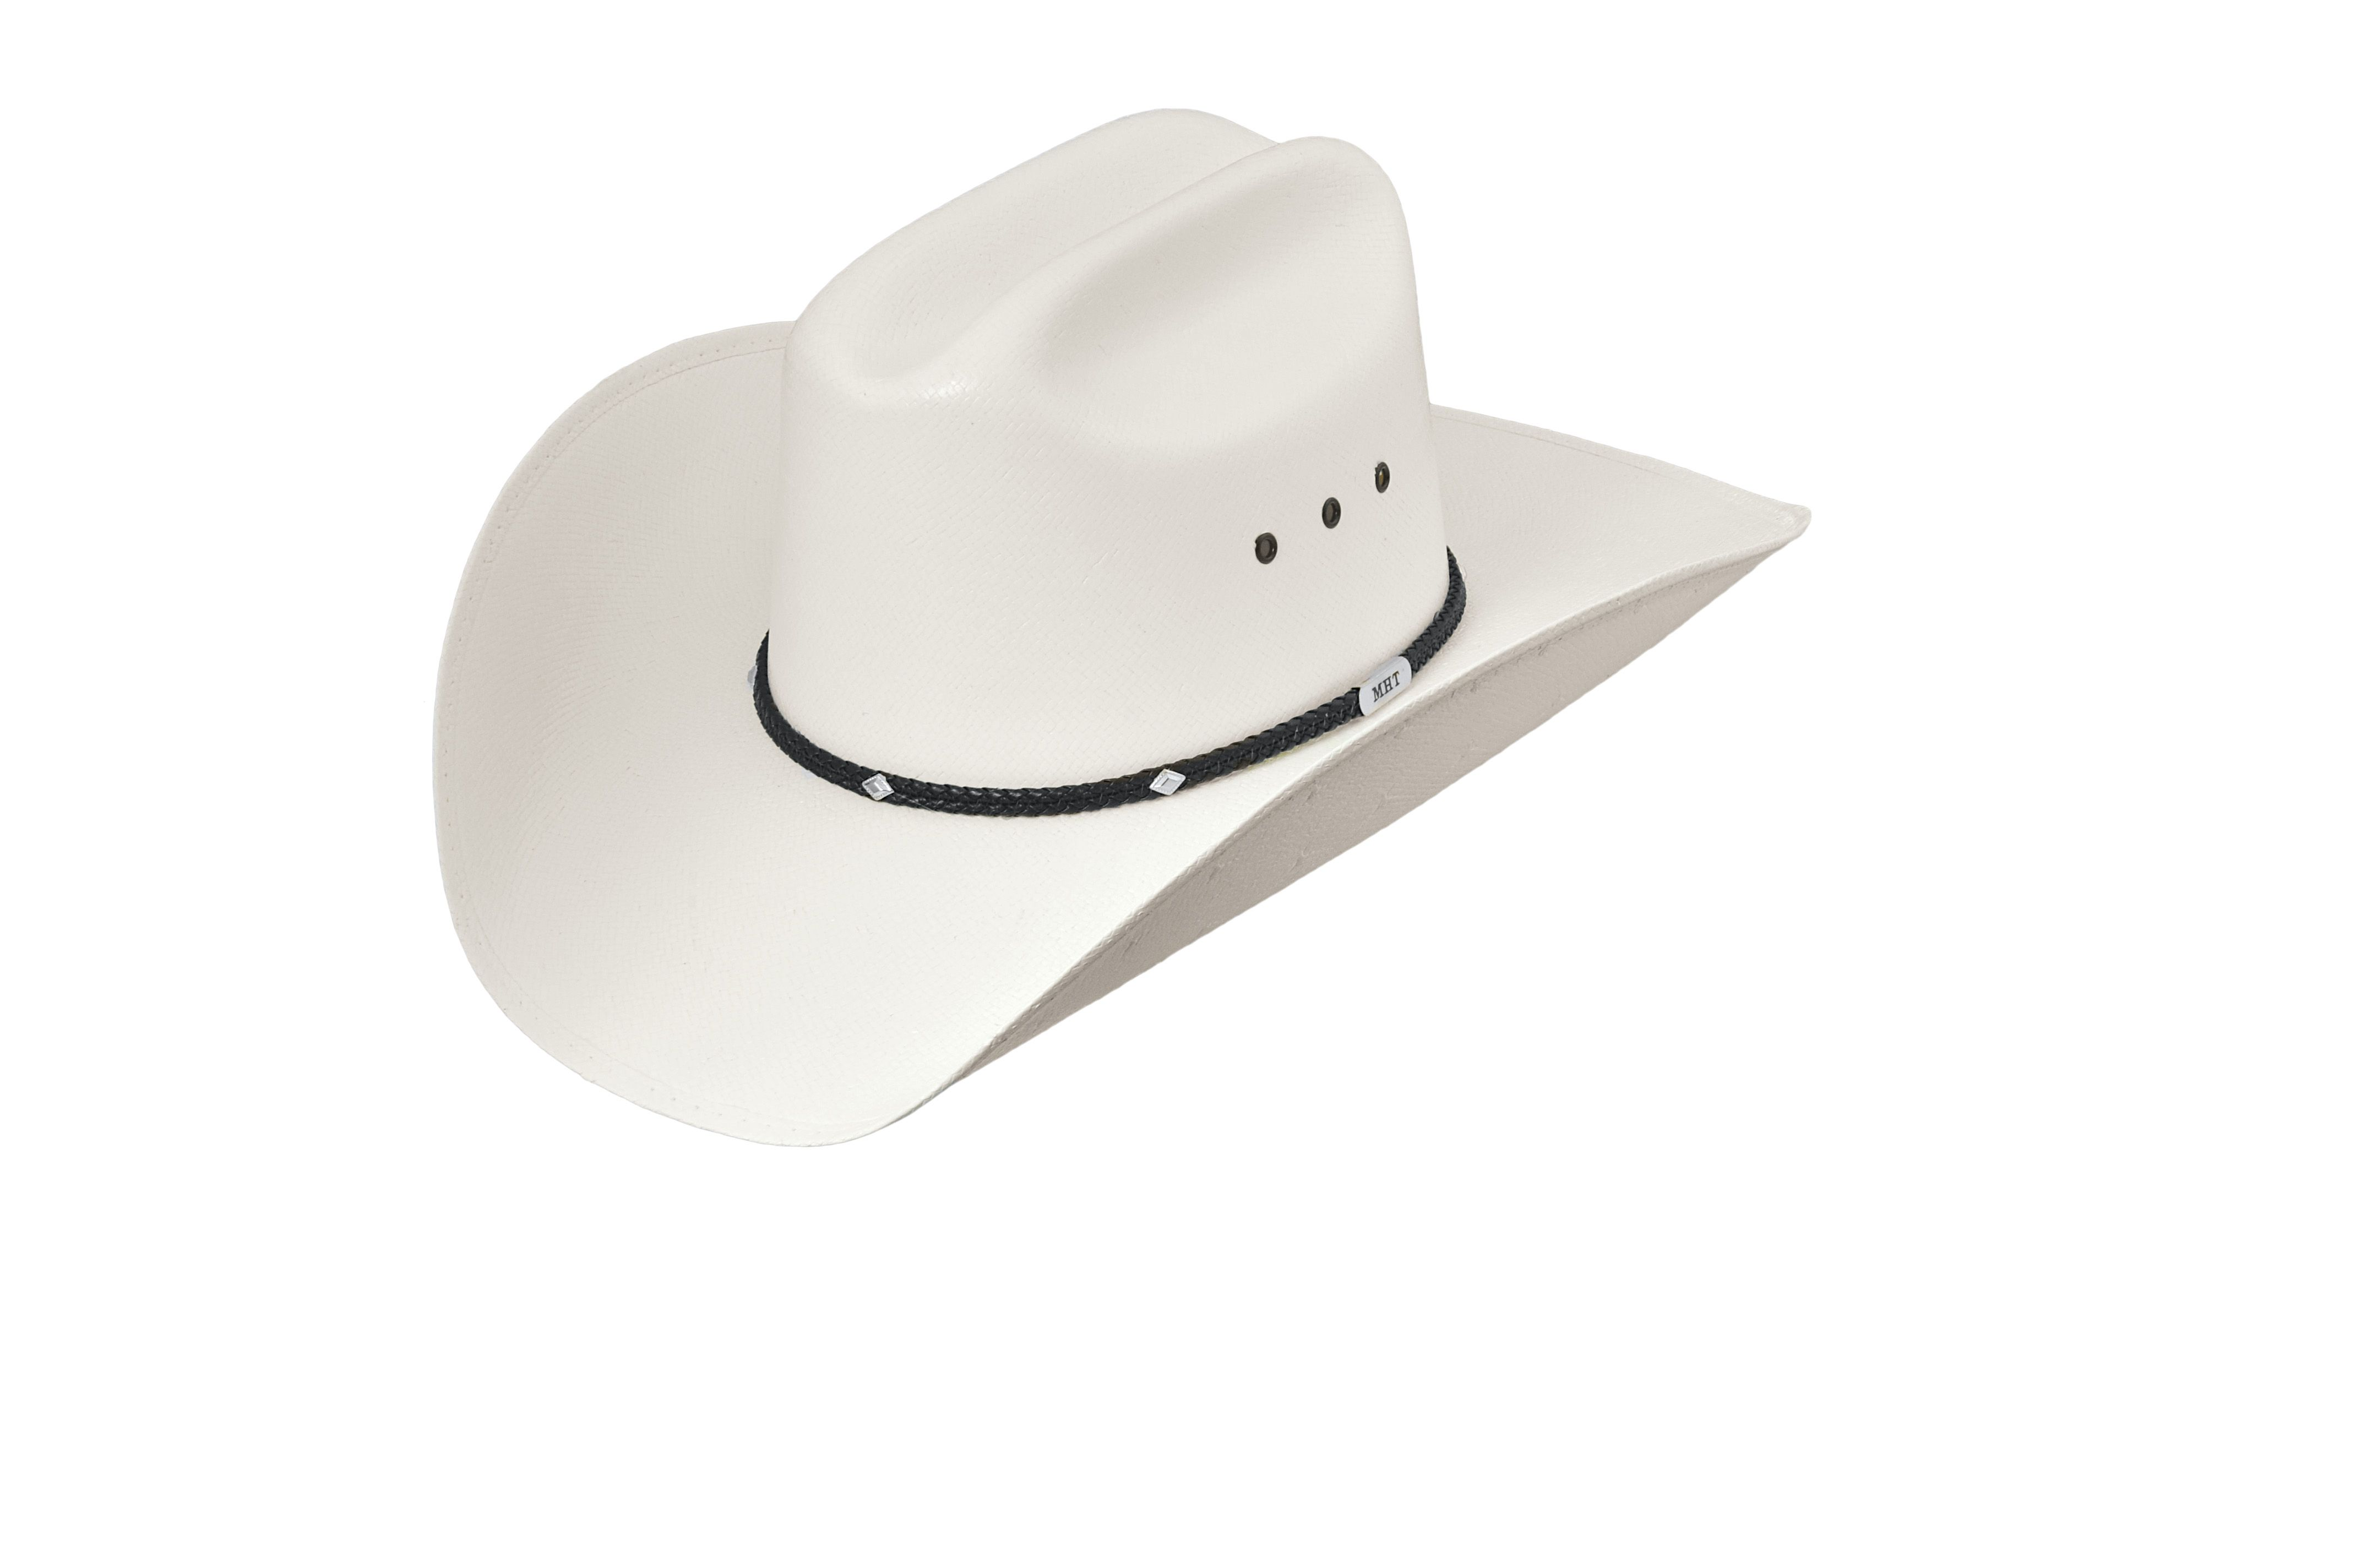 Western. Master Hatters of Texas Spearfish 10X White Straw Cowboy Hat  Cattleman Color  White Master Hatters ed7e5d5b456d